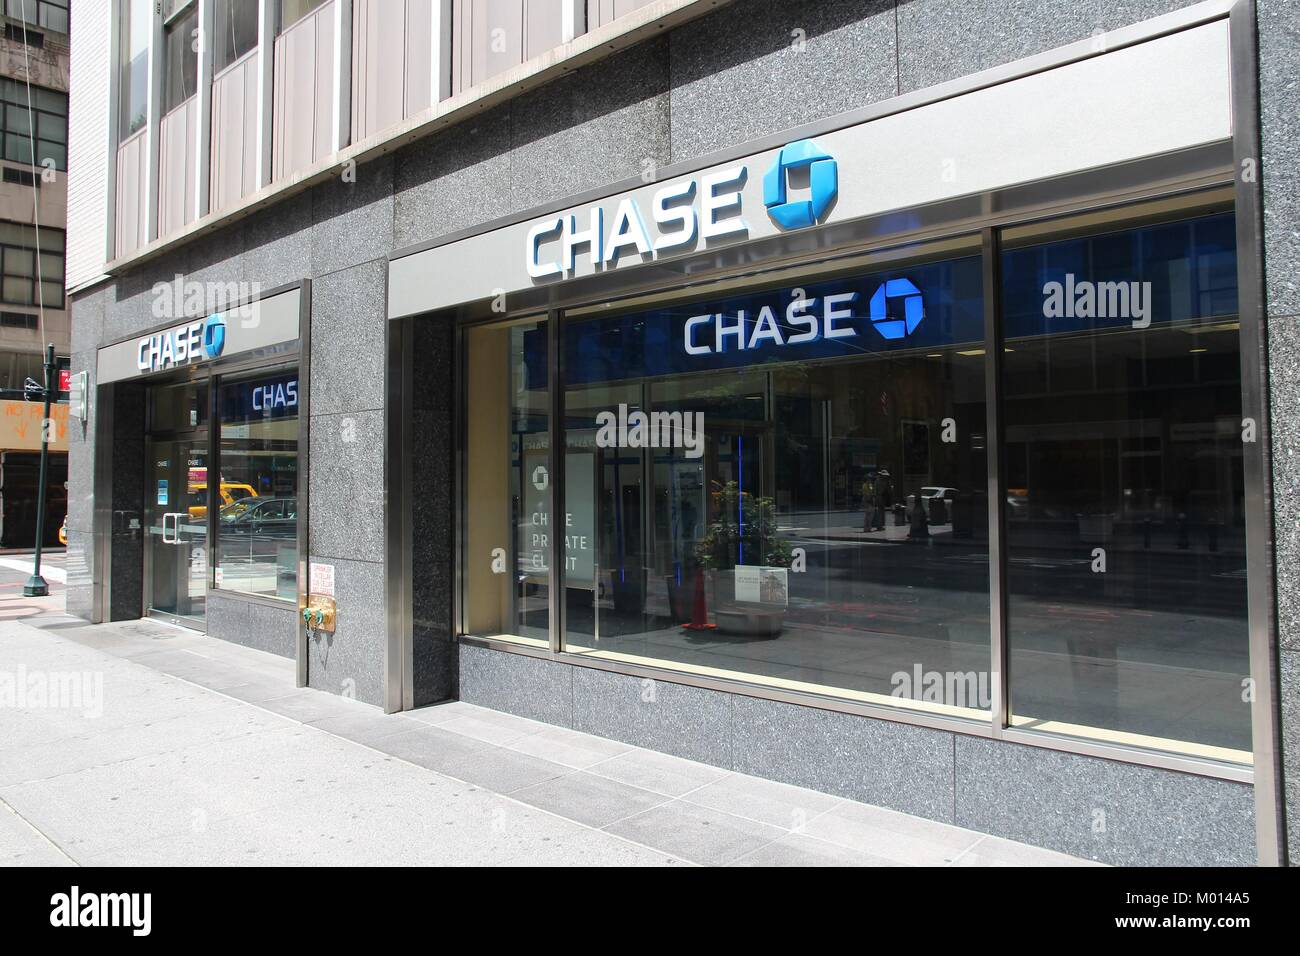 Chase 16 stock photos chase 16 stock images alamy new york july 4 chase bank branch on july 4 2013 in new reheart Choice Image